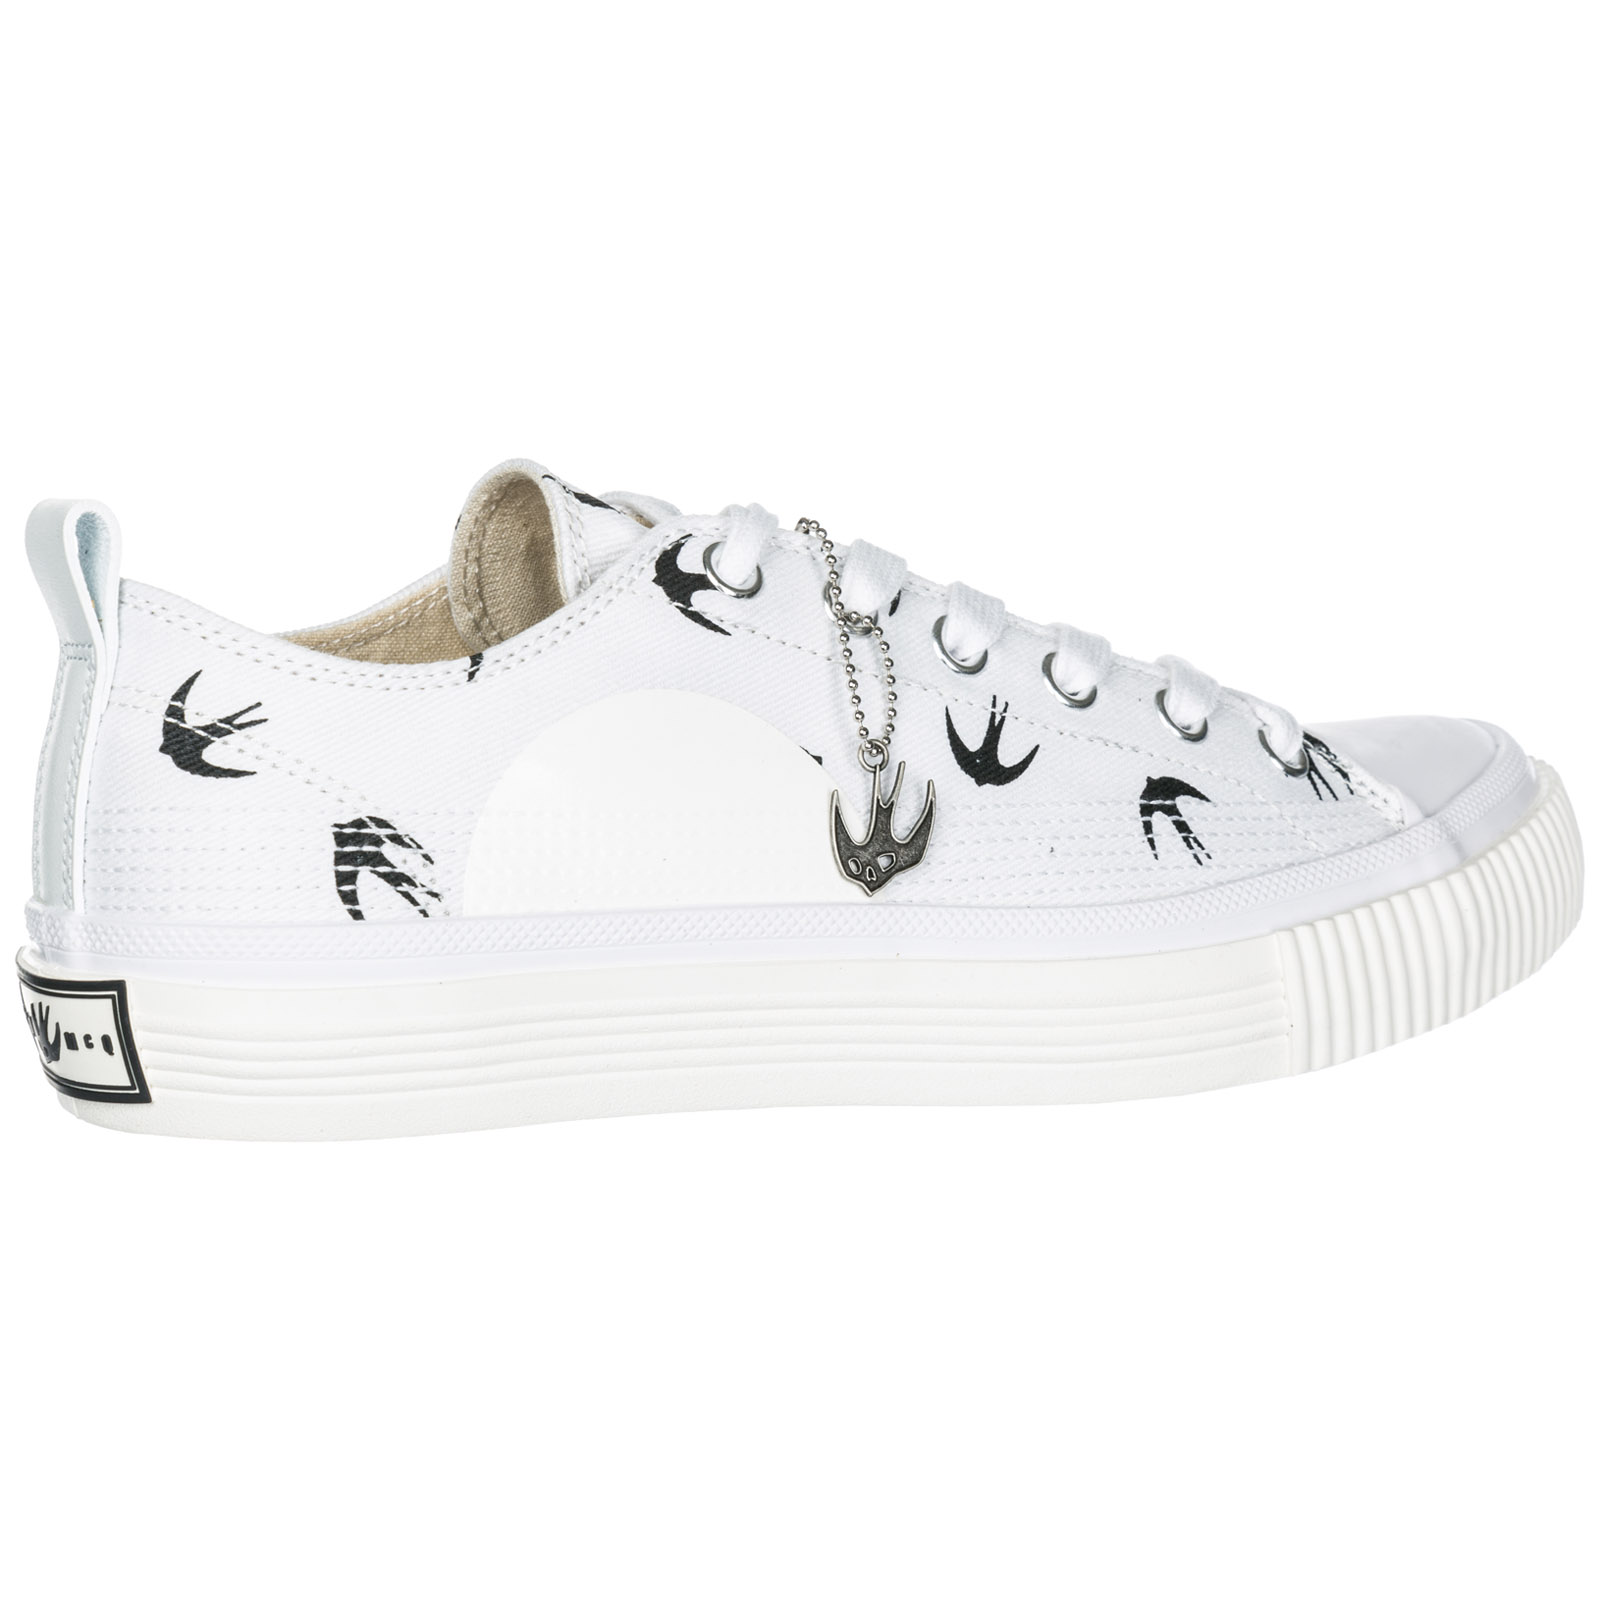 Men's shoes trainers sneakers  plimsoll